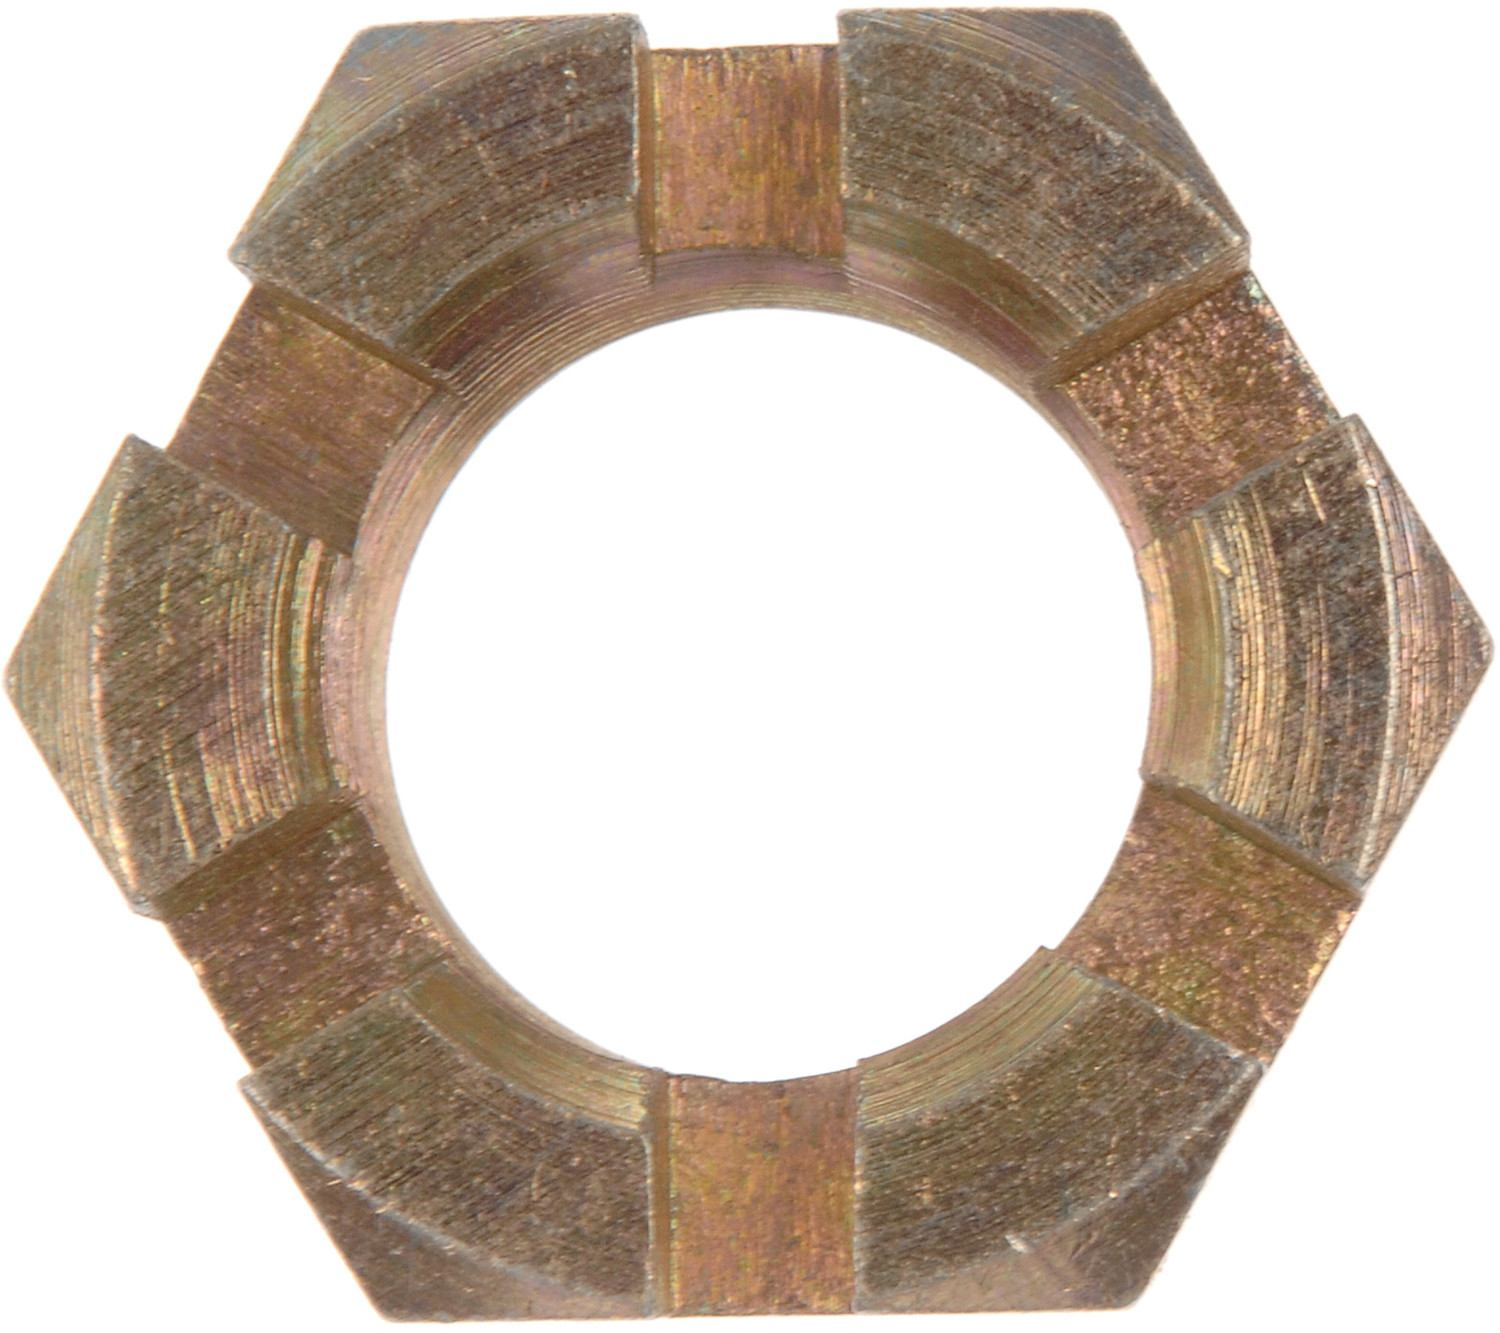 DORMAN - AUTOGRADE - Spindle Nut - DOC 615-152